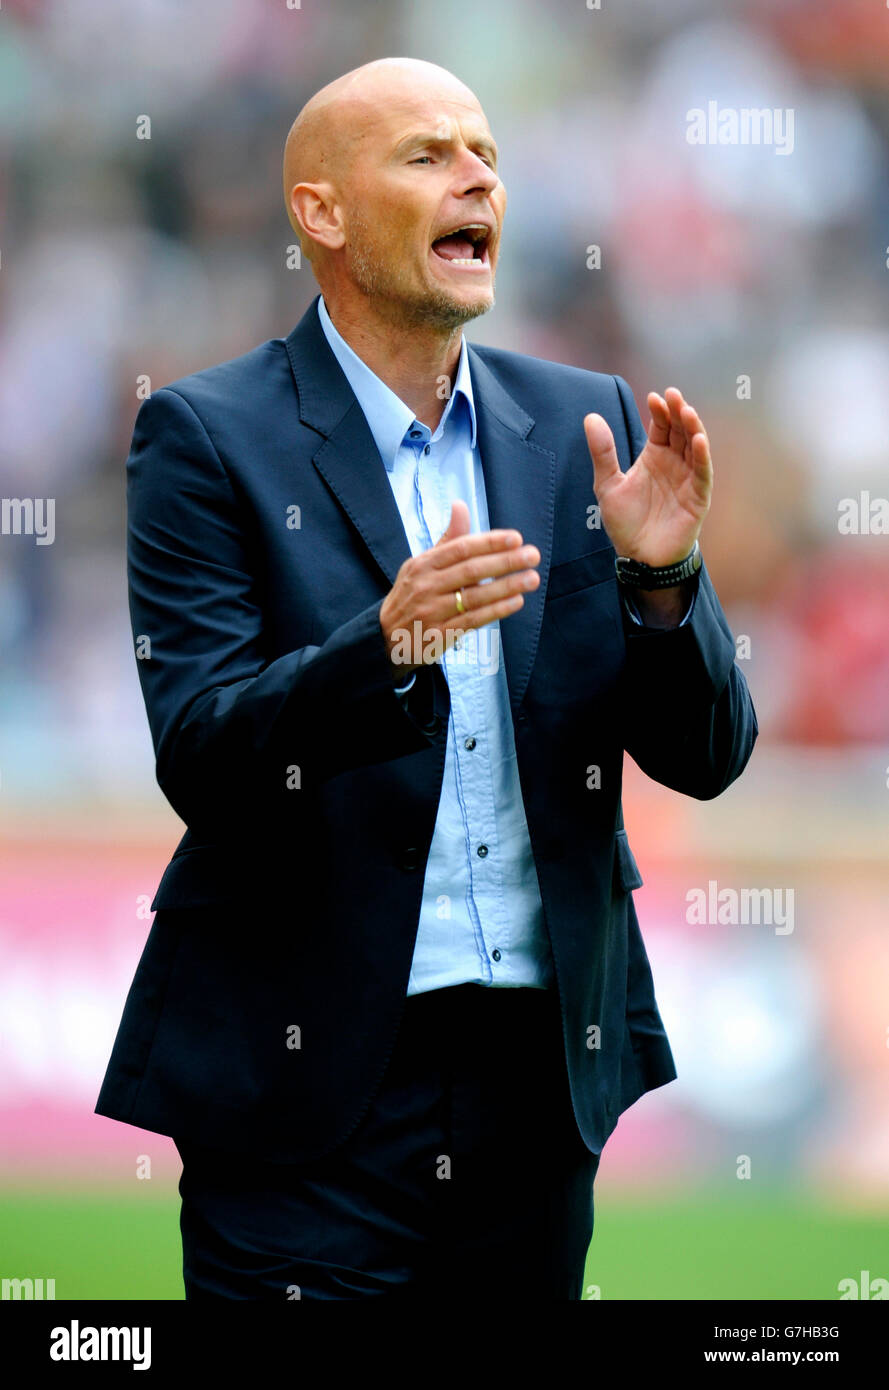 Stale Solbakken, manager of FC Cologne during football test match between FC Cologne 1-2 Arsenal, Rhein-Energie - Stock Image